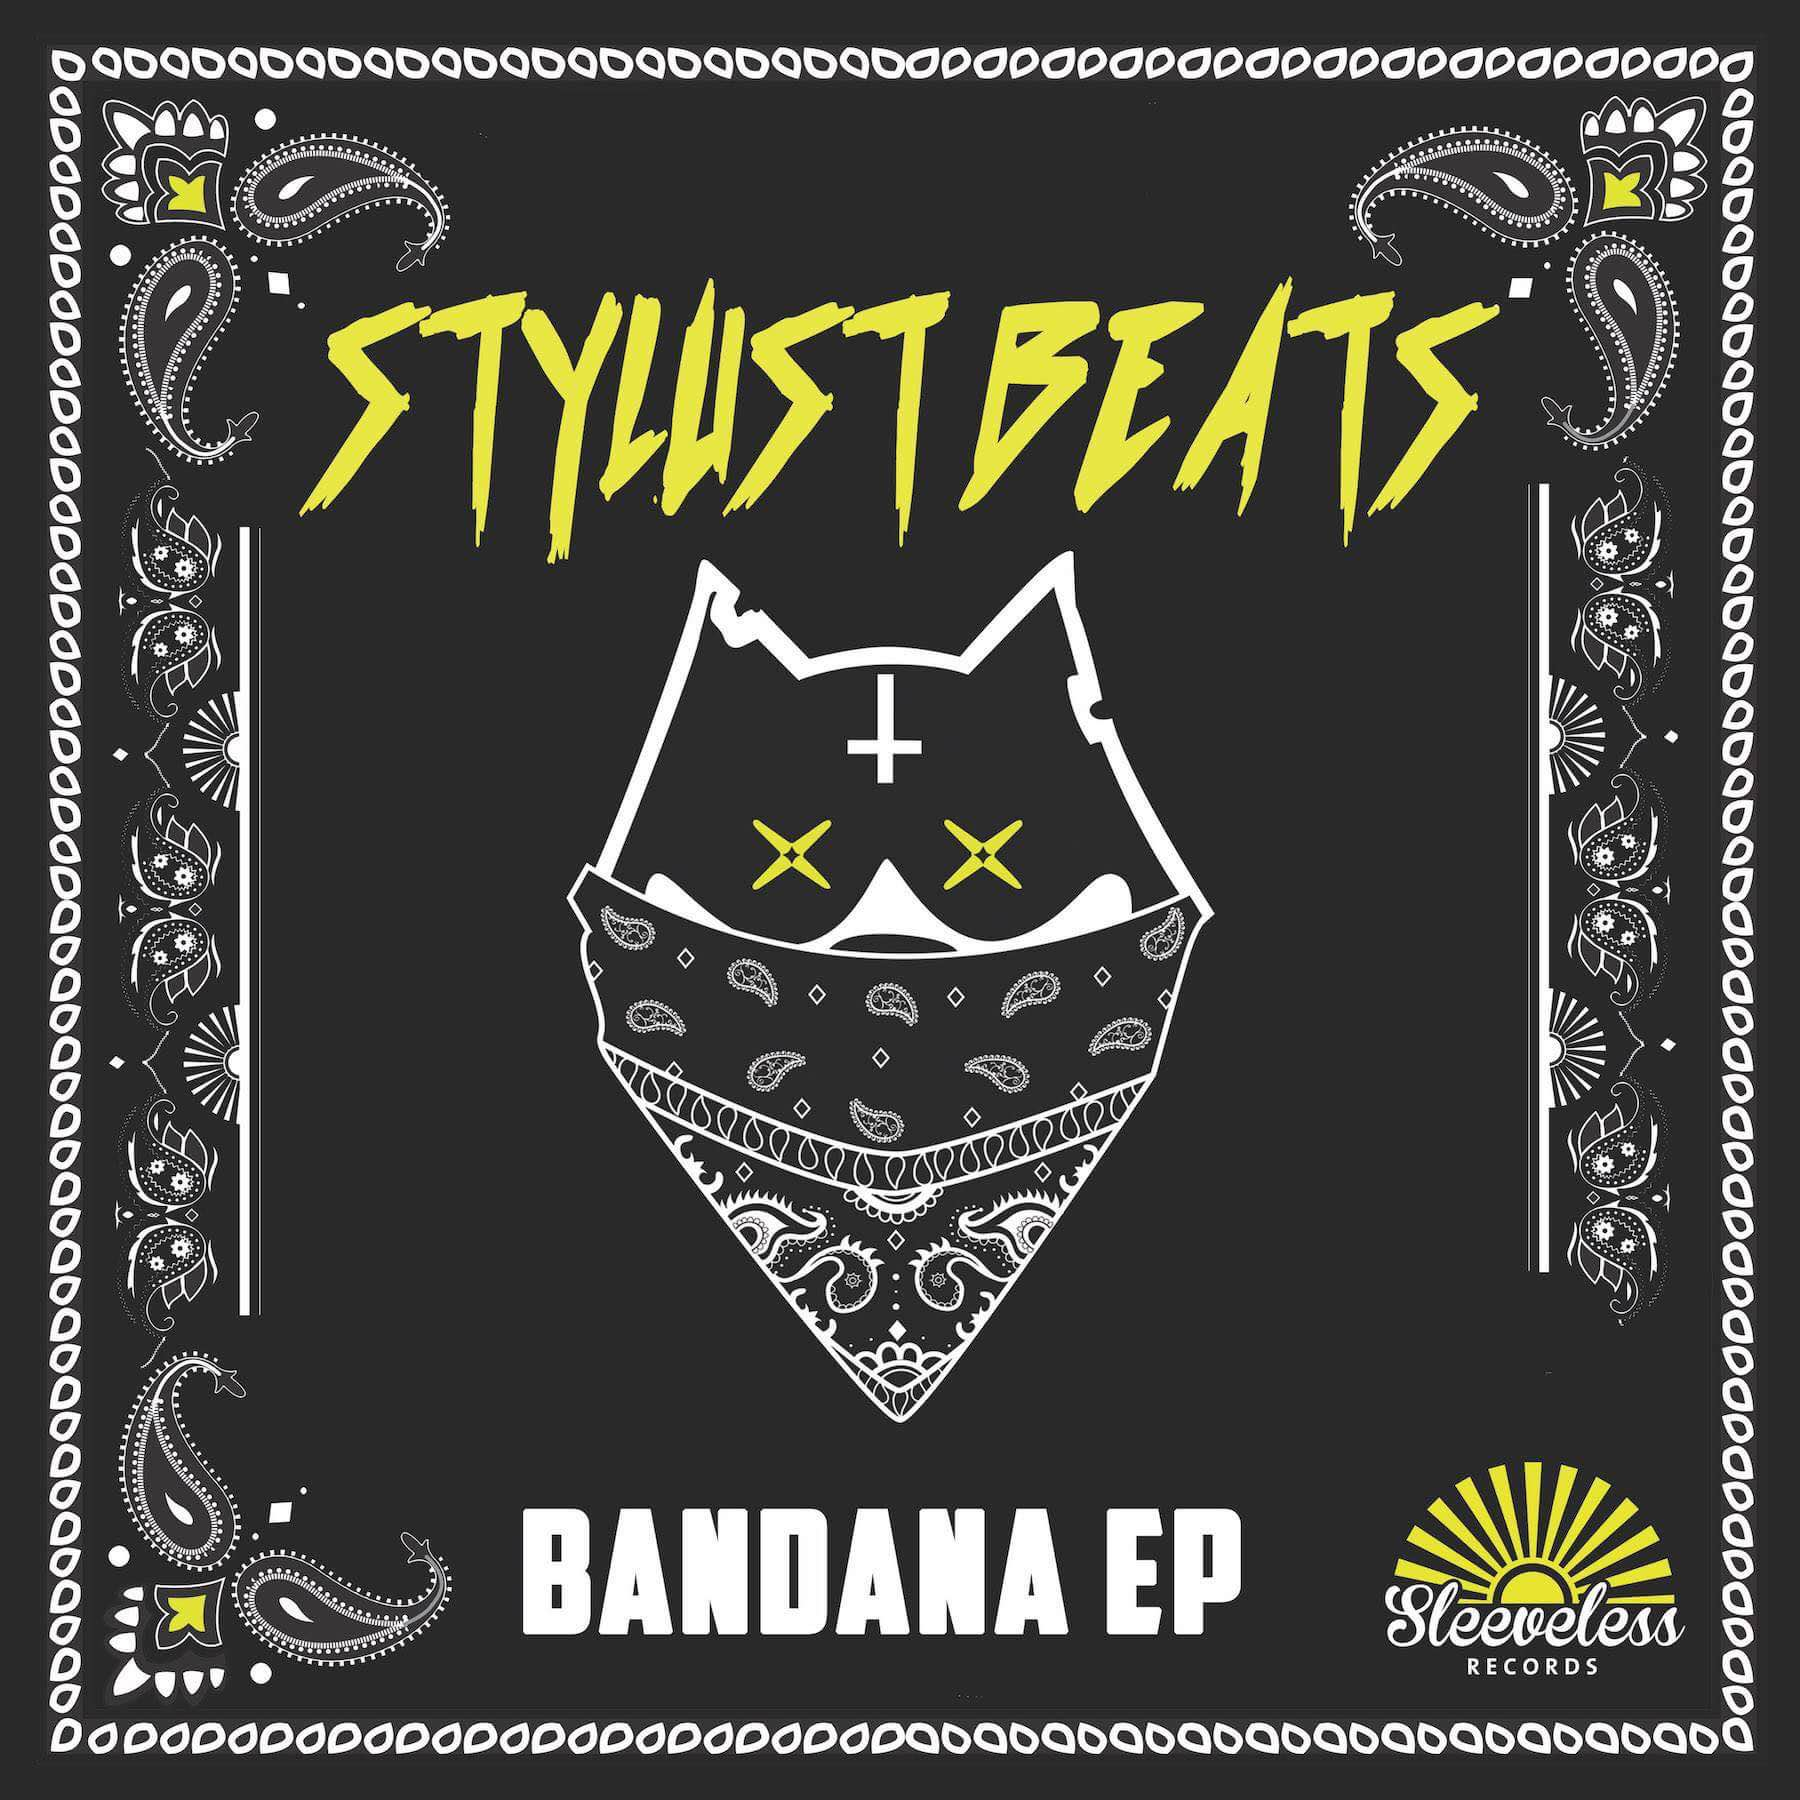 Backstage with Stylust Beats